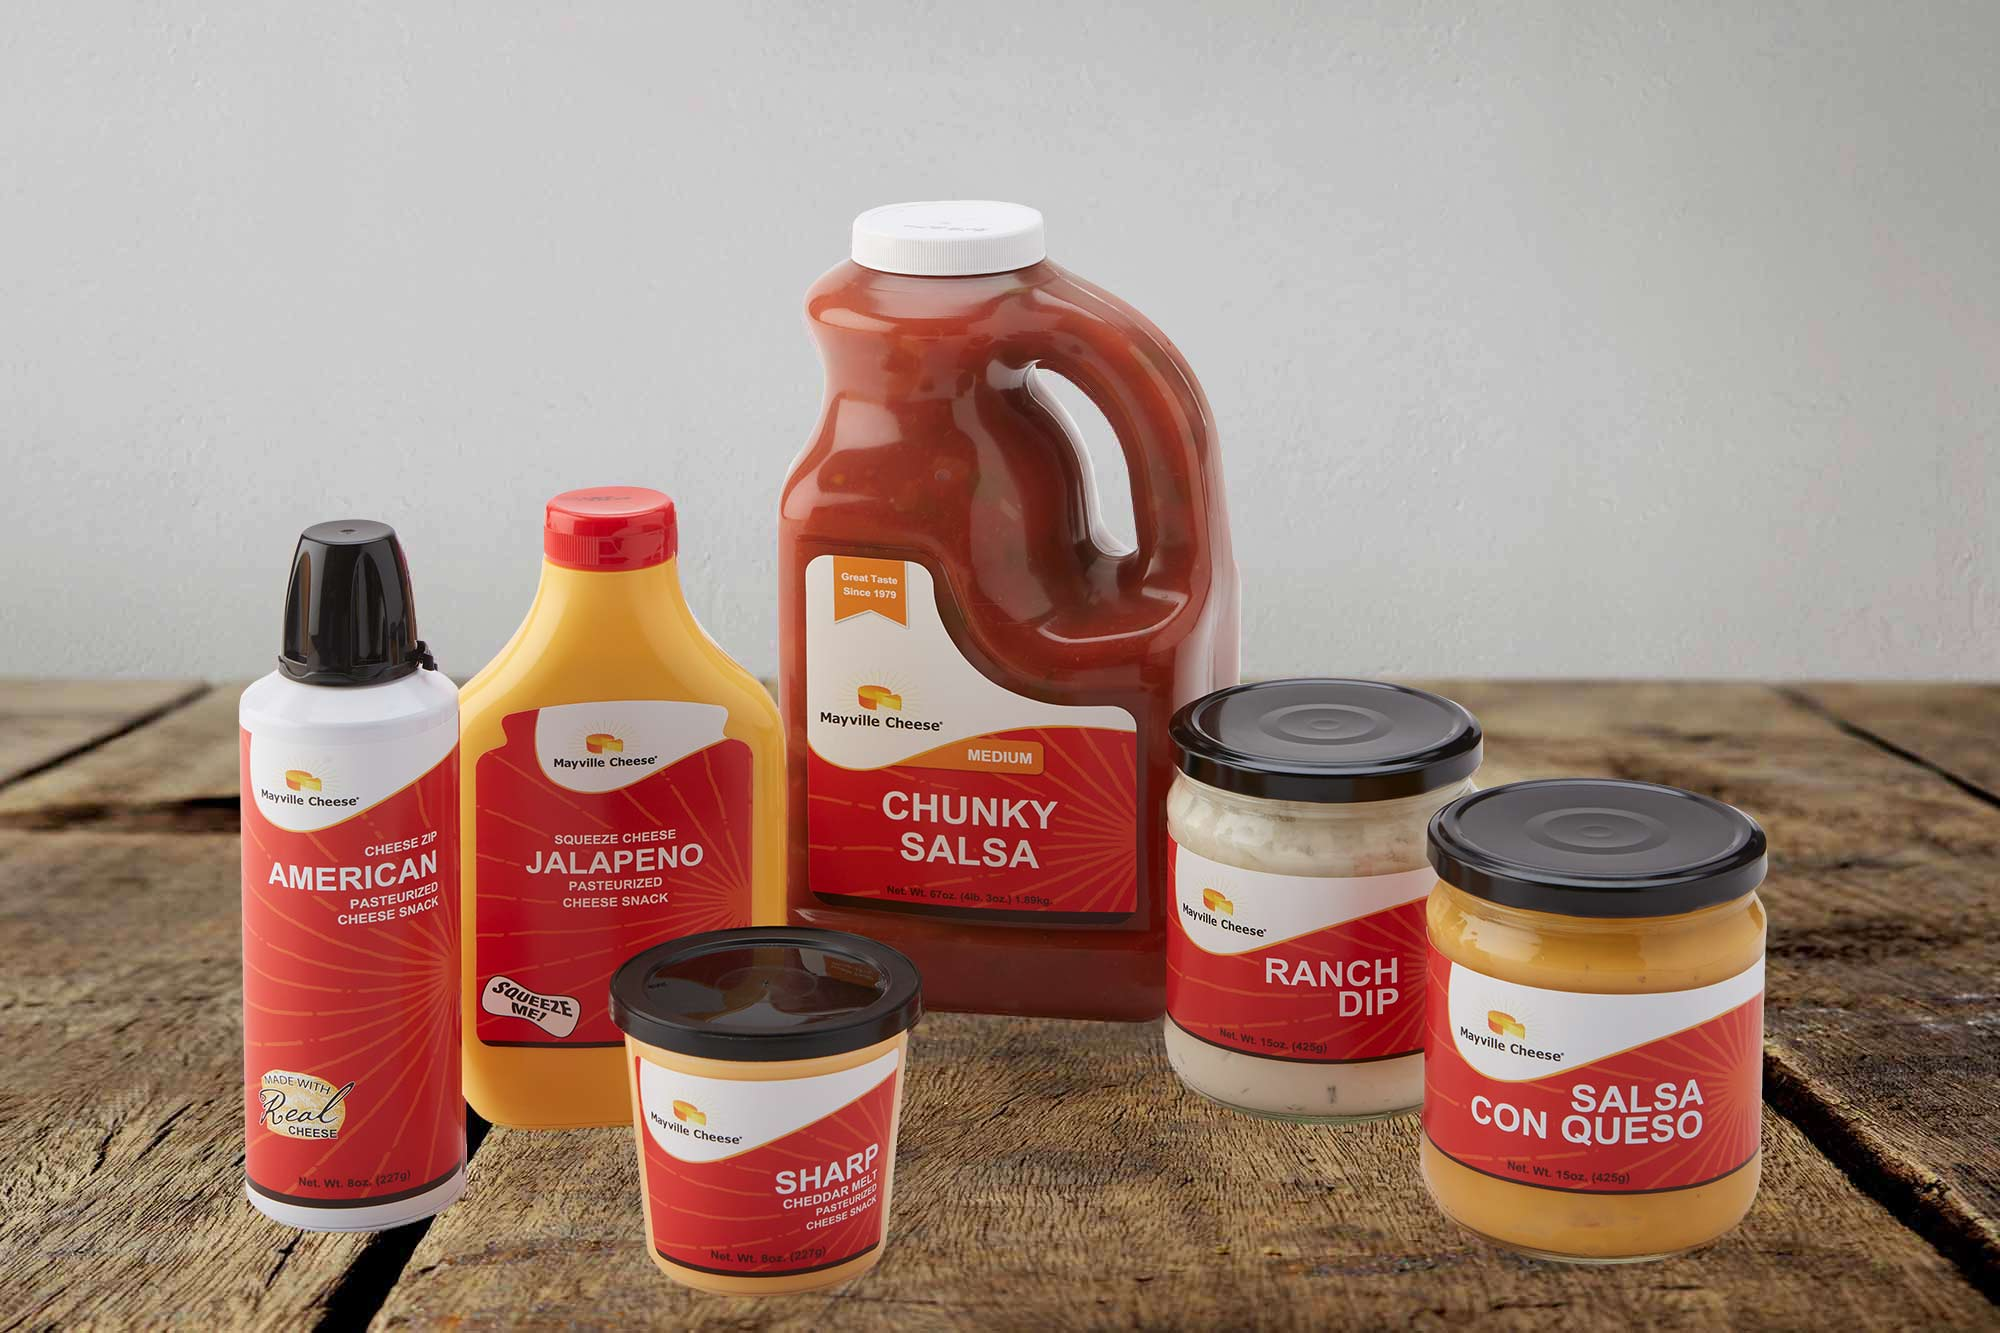 Mayville Cheese Product Line